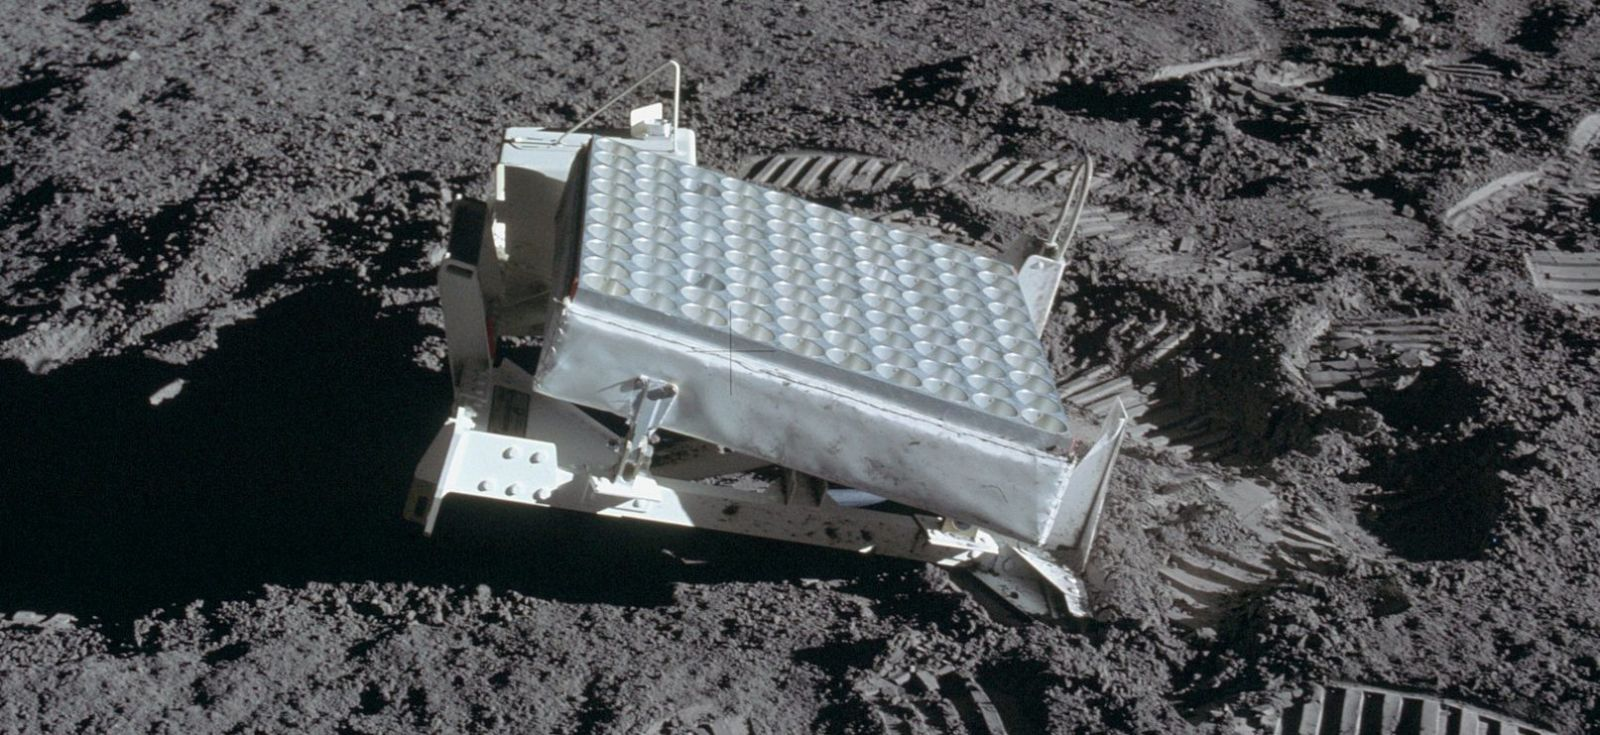 A Laser Ranging Retroreflector on the Moon. These experiments were used for decades after astronauts placed them there during the Apollo Program. Photo Credit: NASA